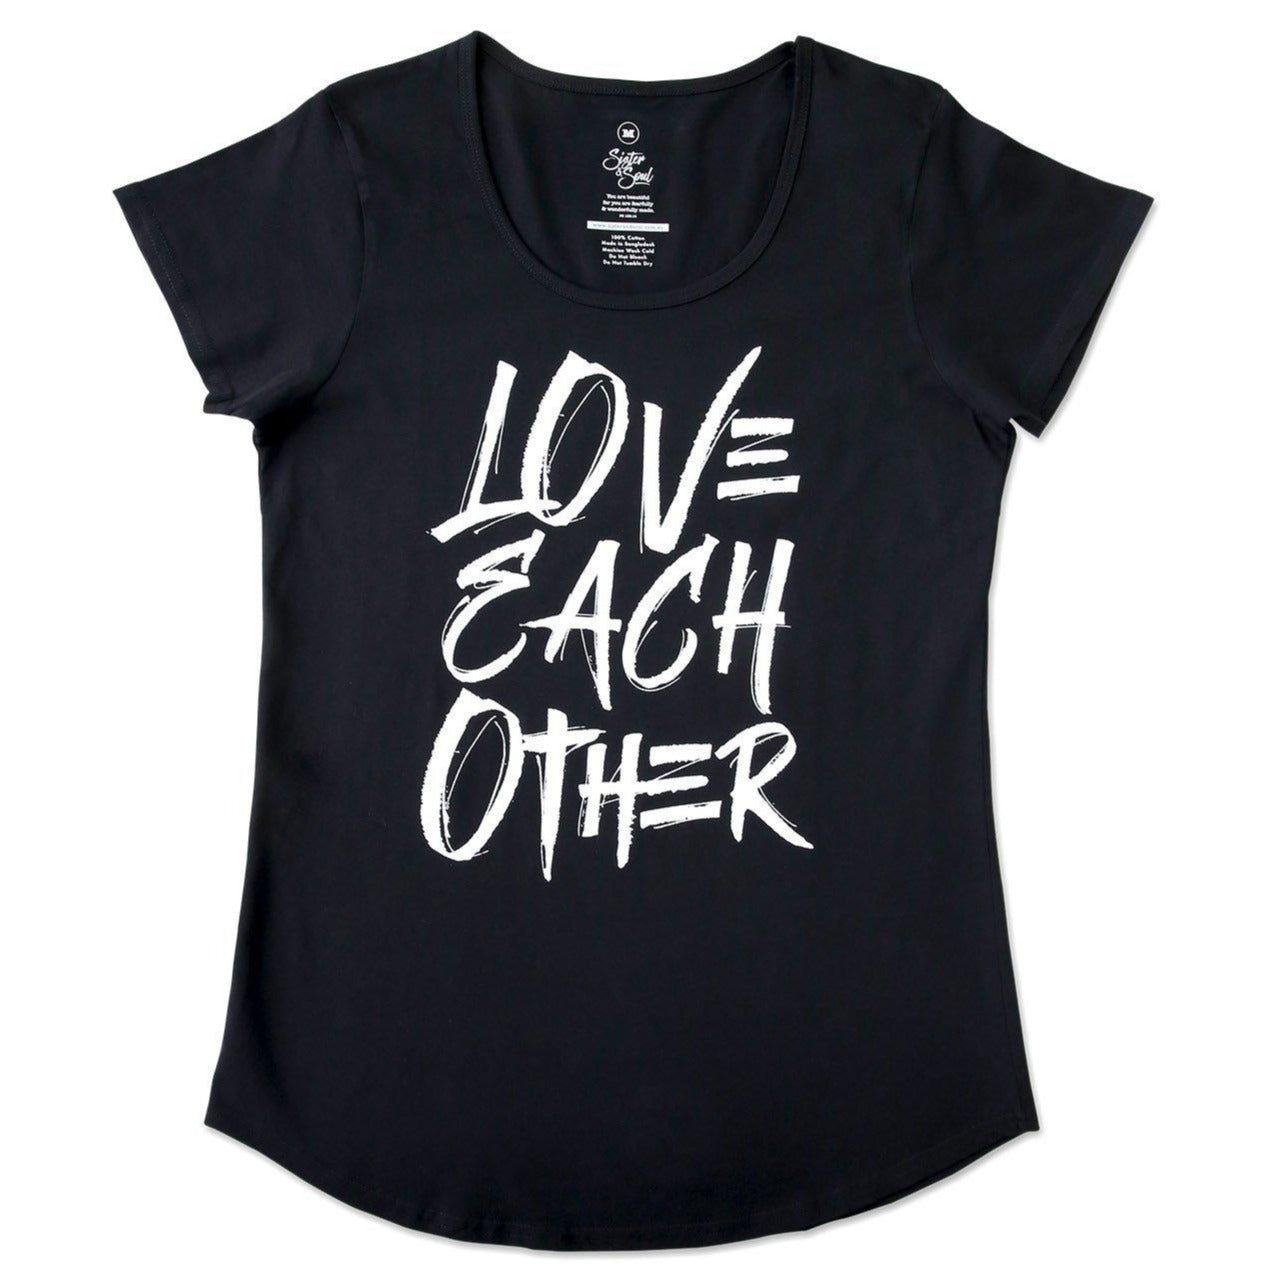 Black Love Each Other Motivational T-shirt with Scooped shape.